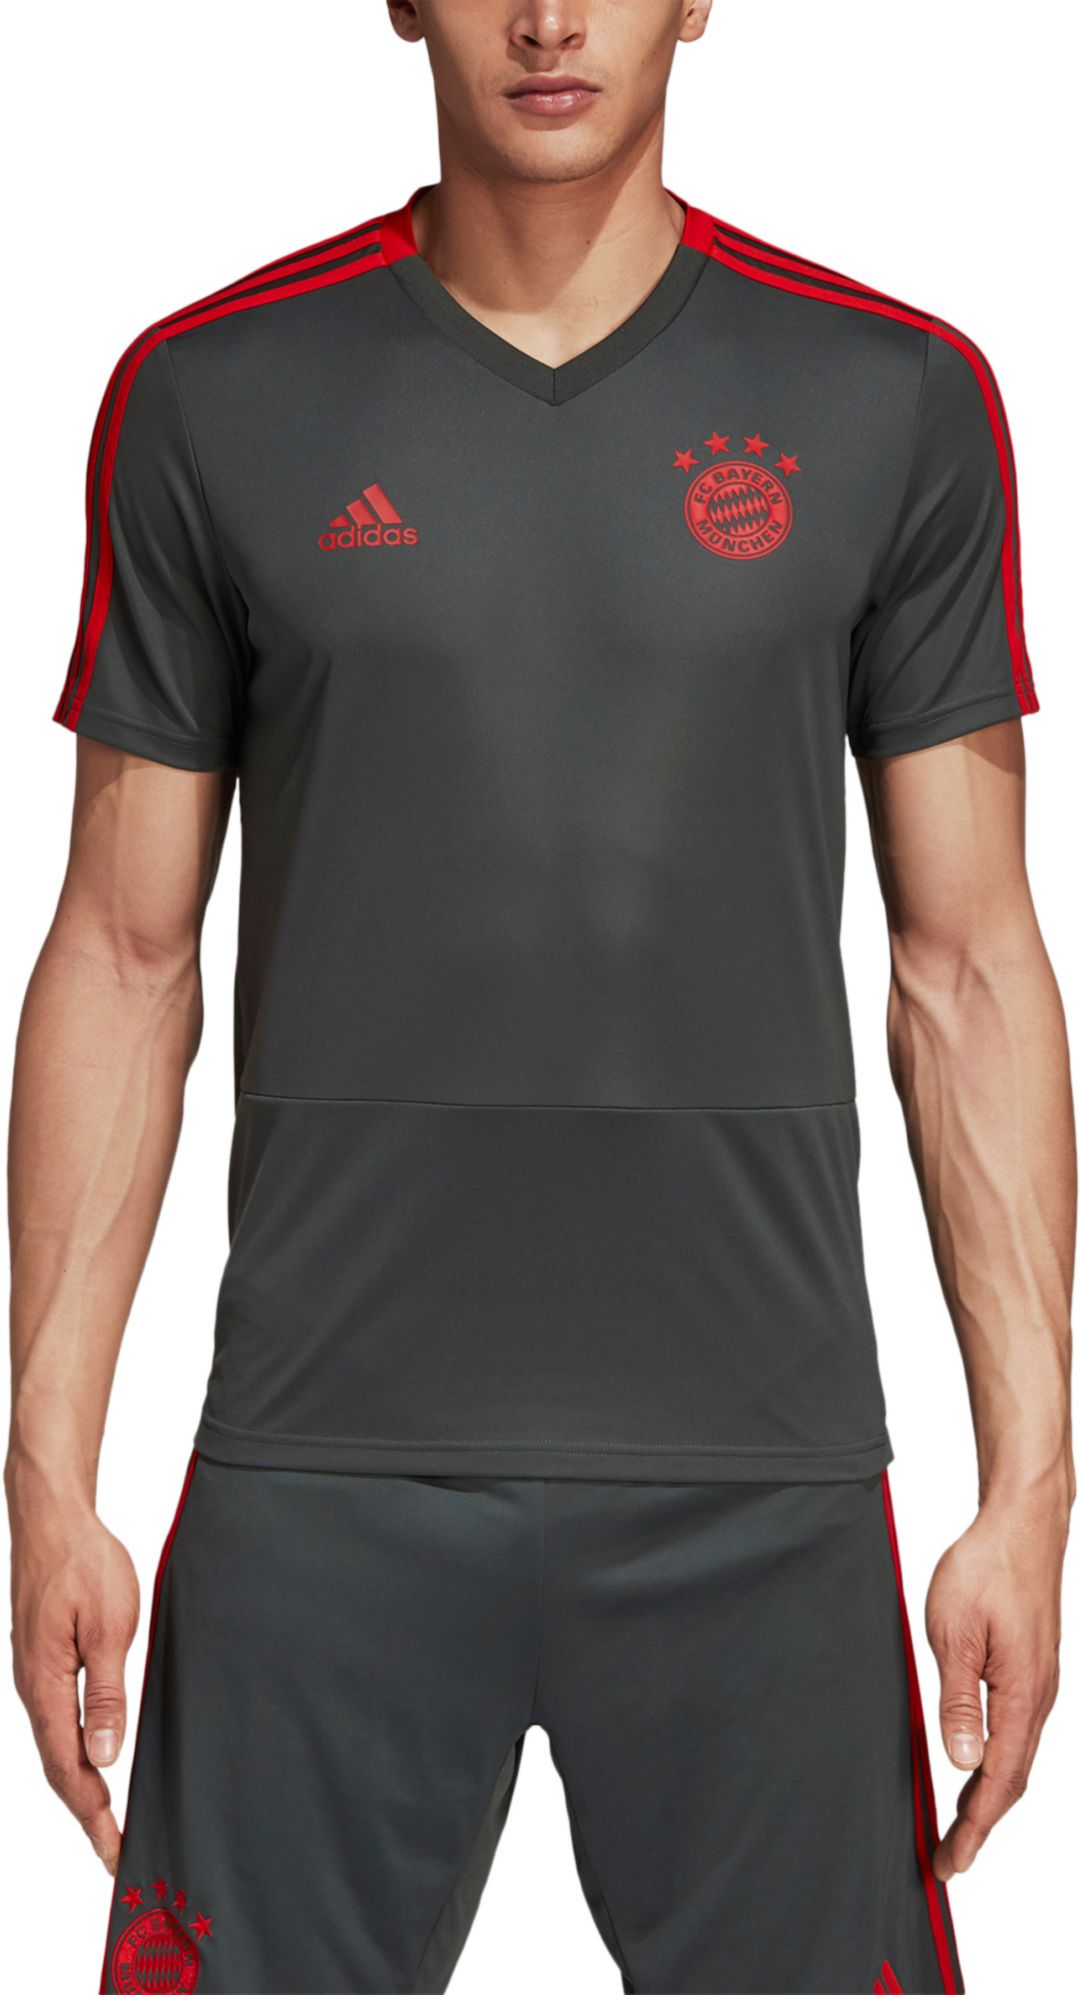 the best attitude 7d669 6e97f adidas Men's Bayern Munich Training Grey Performance Shirt